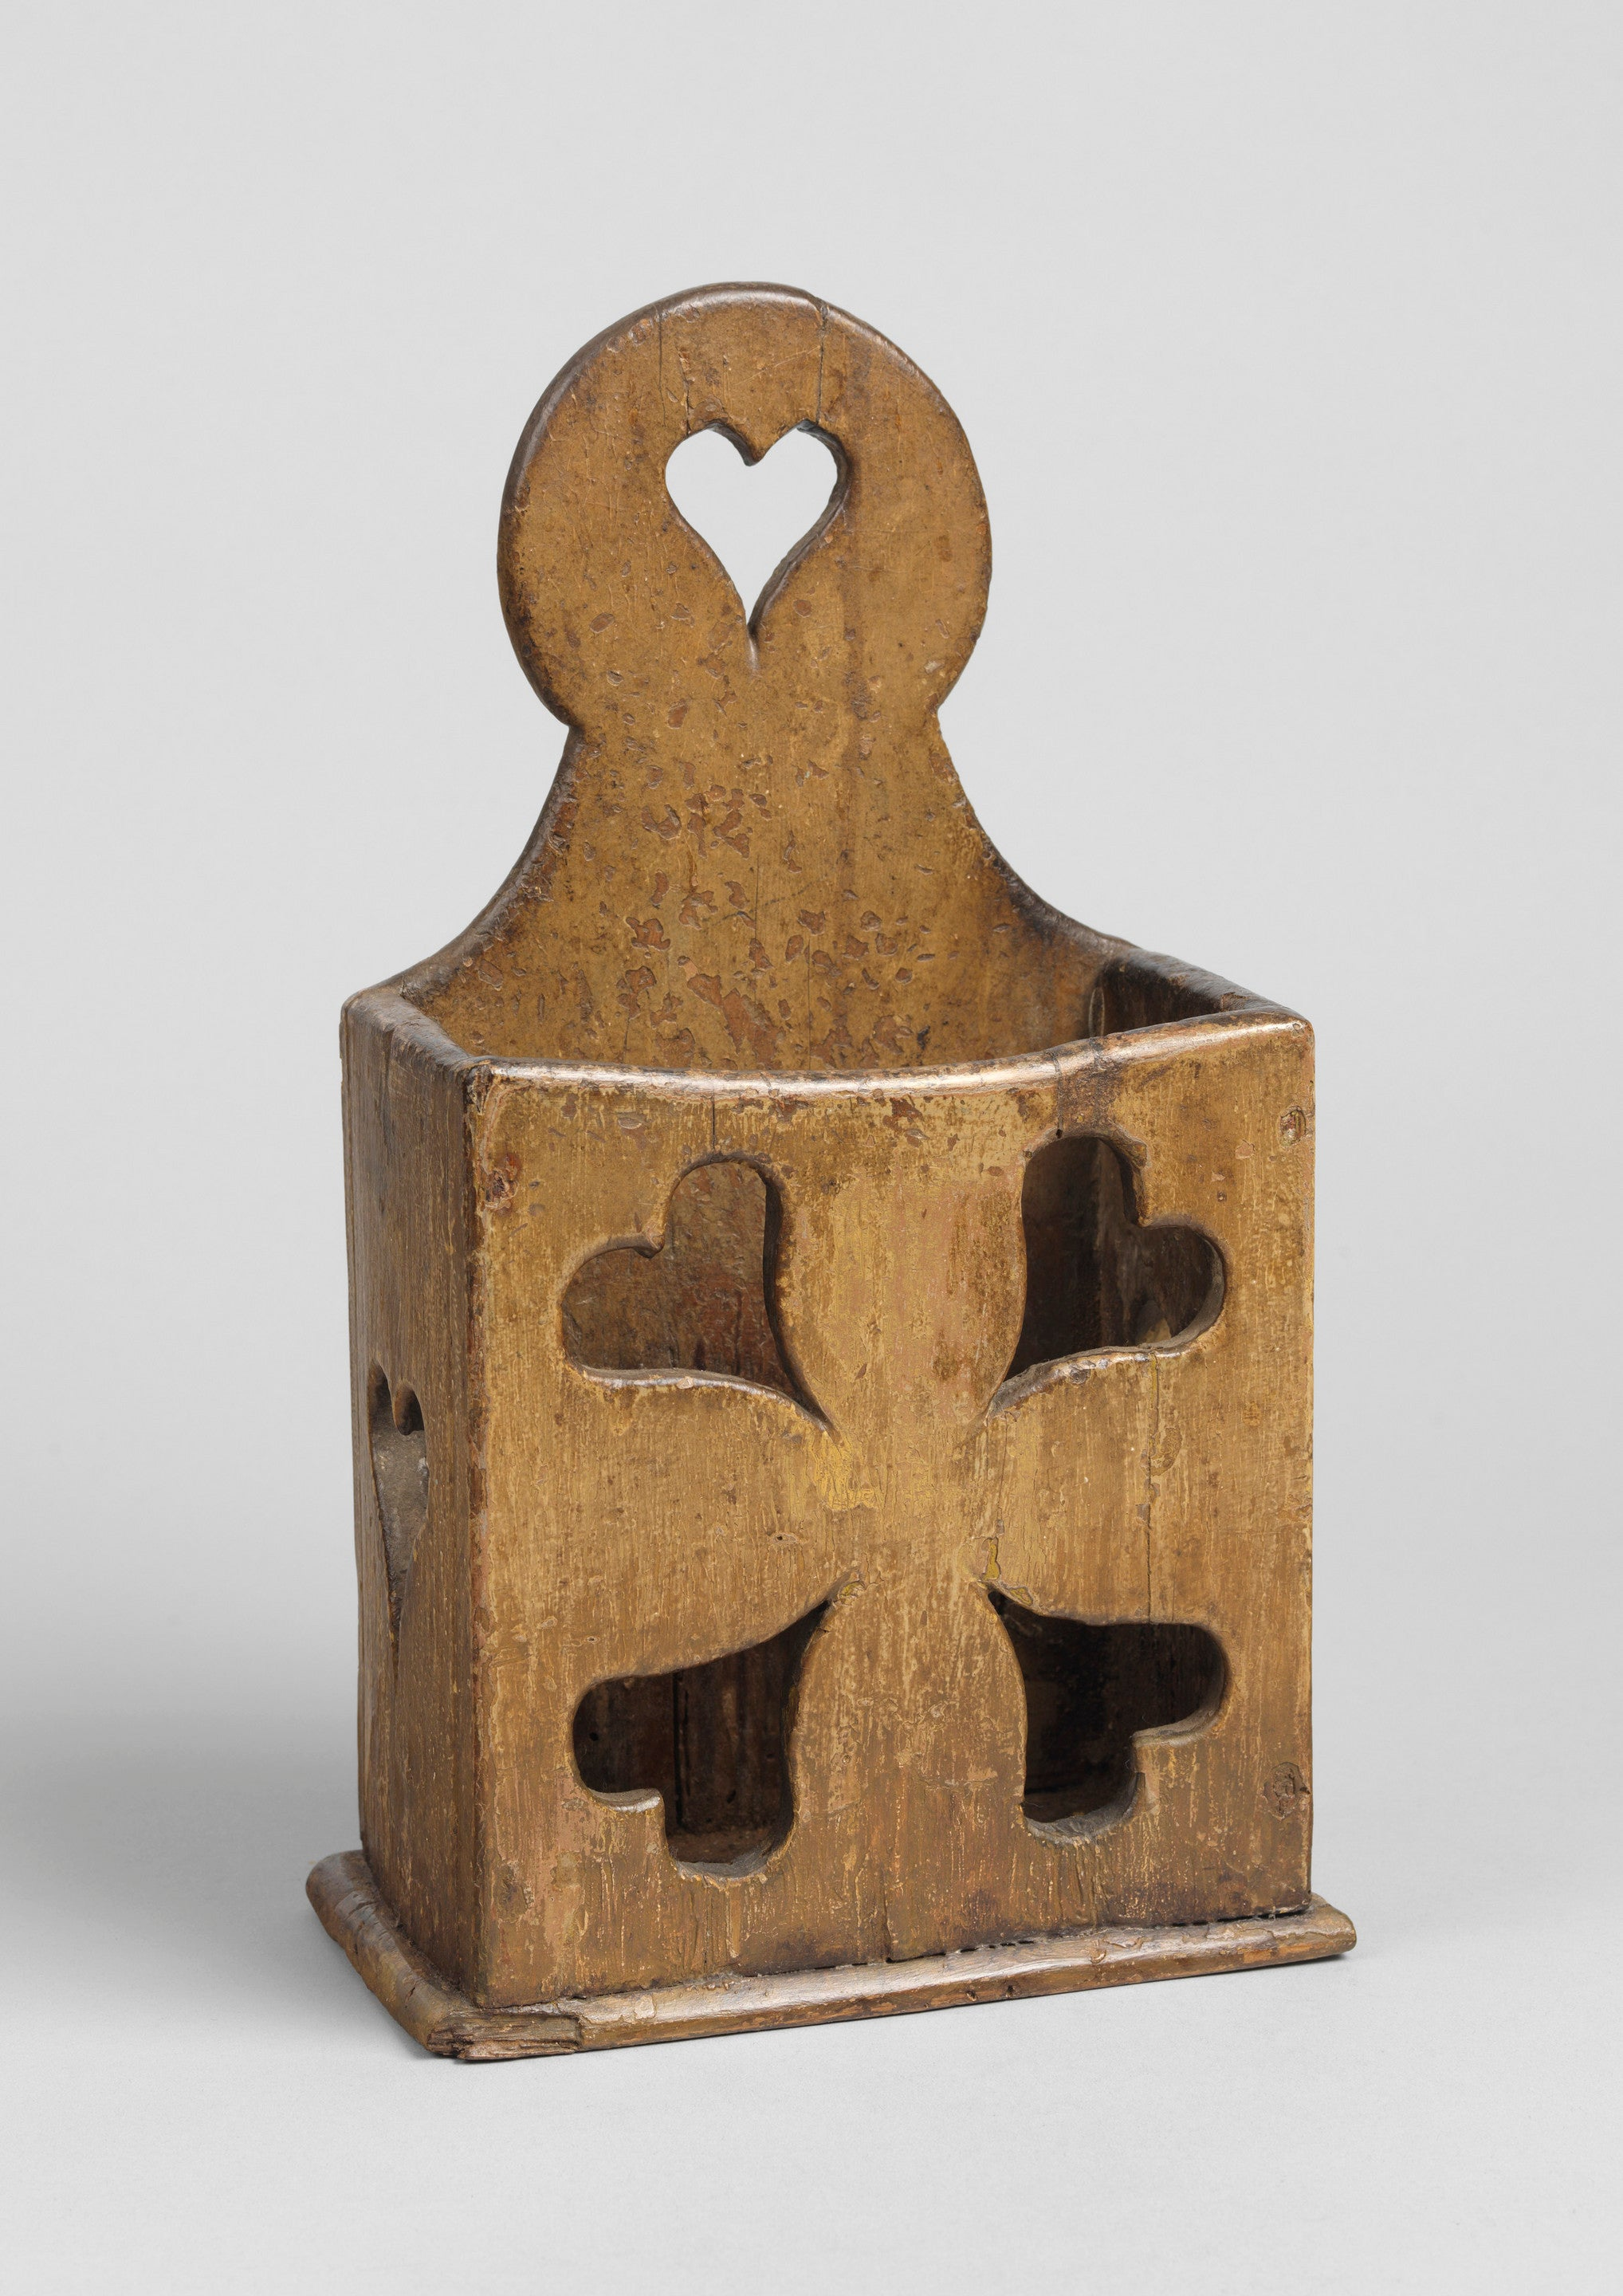 Graphic Folk Art Love Token Candlebox